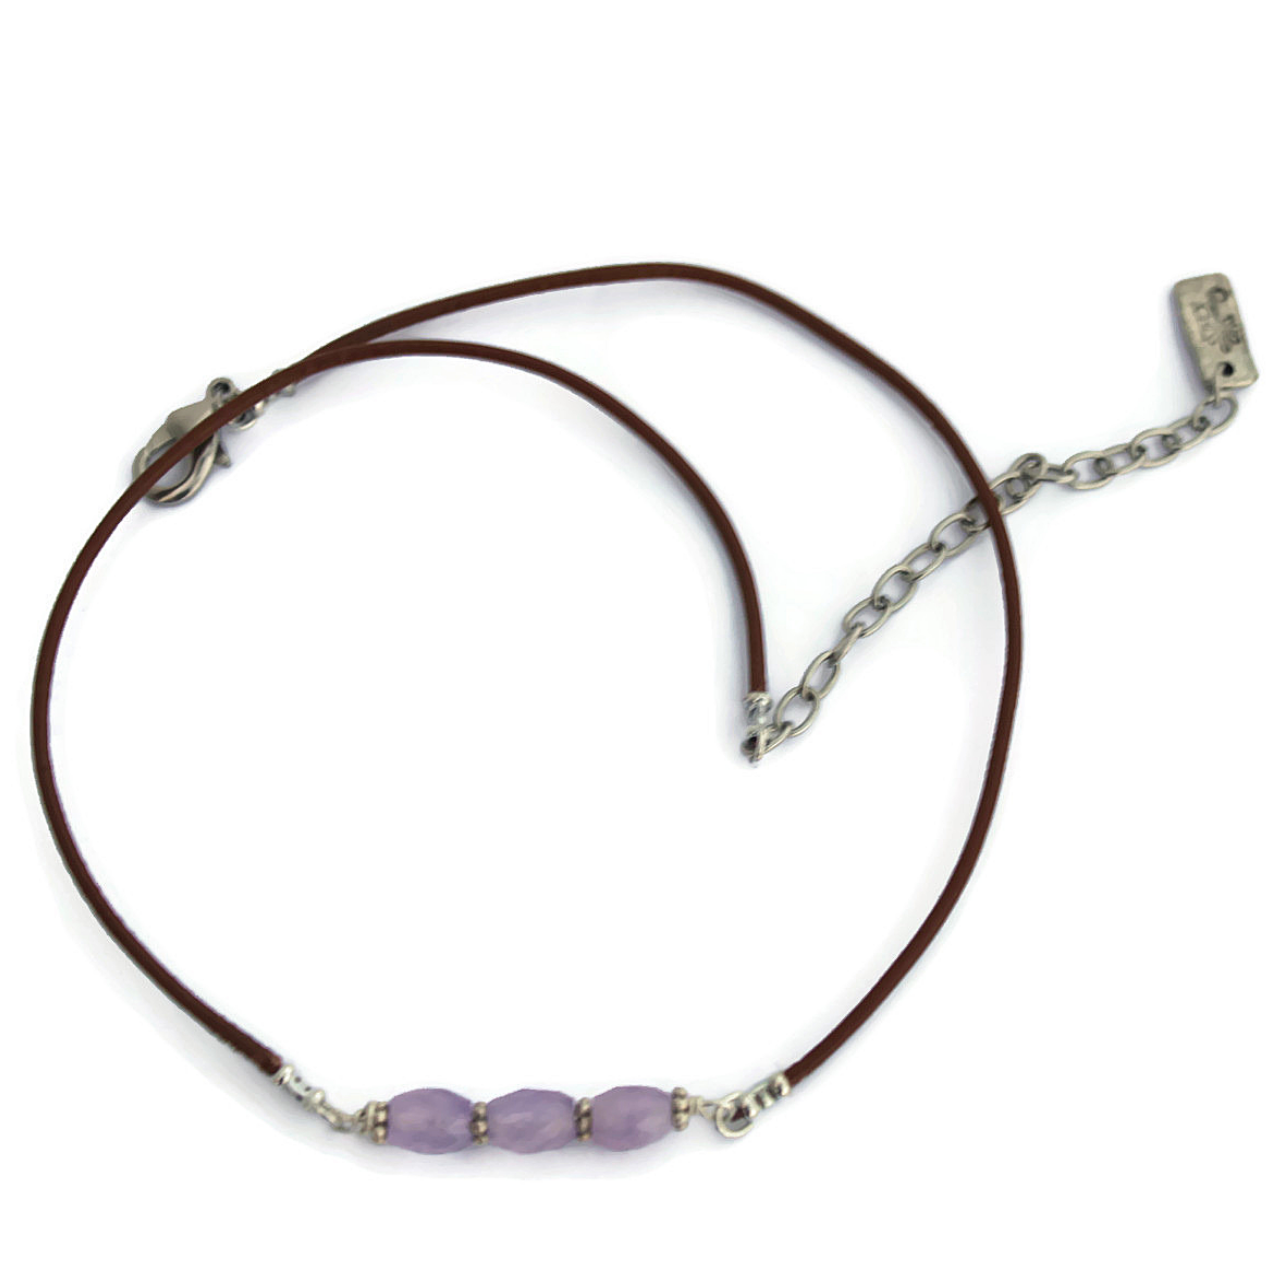 Amethyst Collar necklace